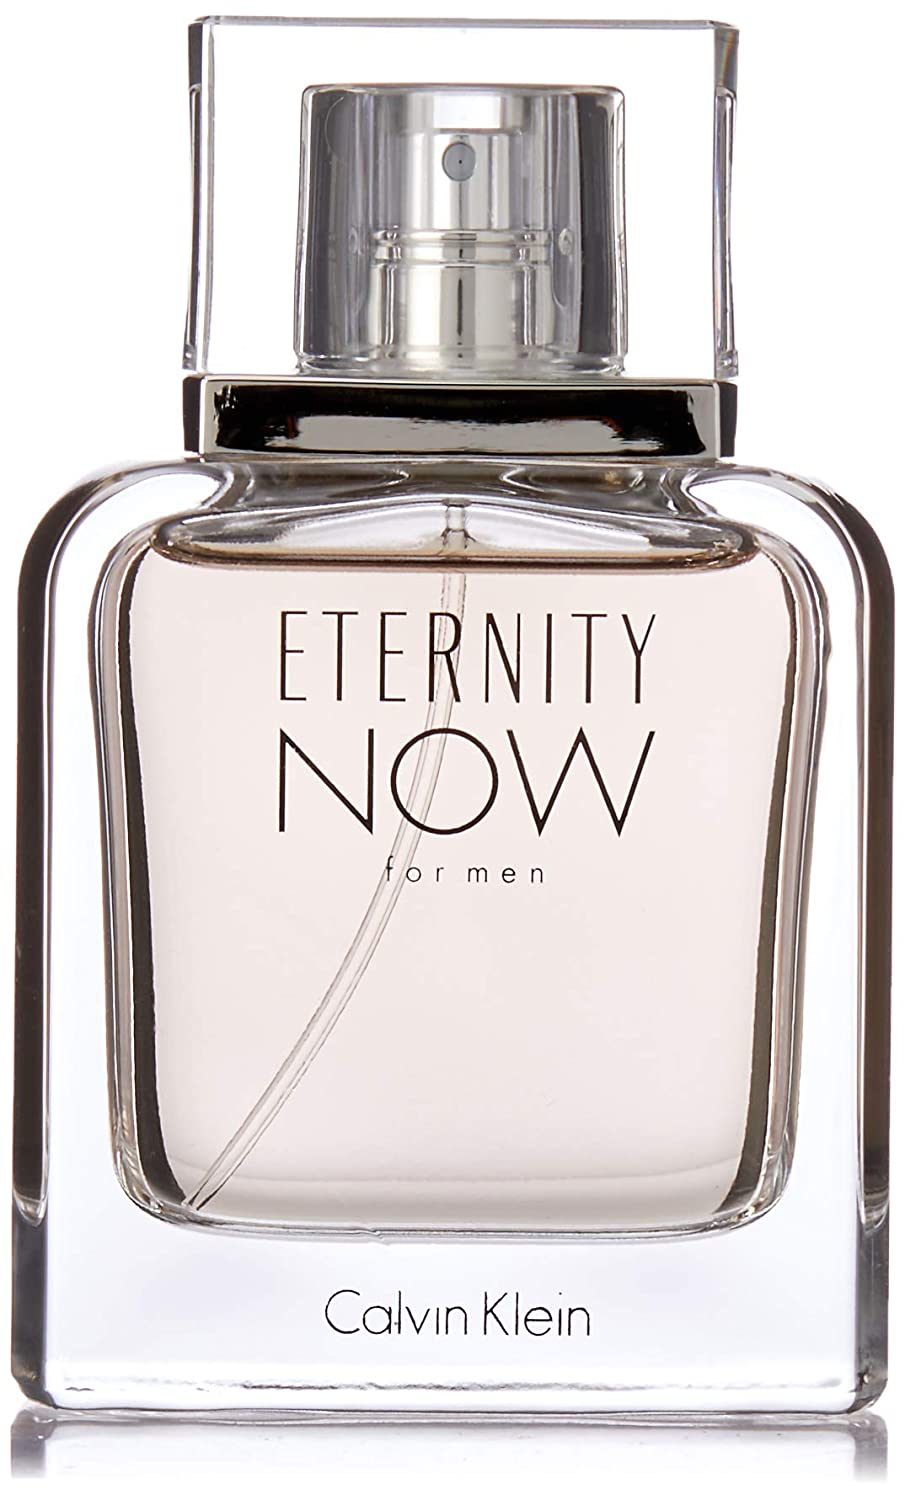 CK CALVIN KLEIN ETERNITY UOMO PROFUMO EDT 100ML VAPO perfume men Spray